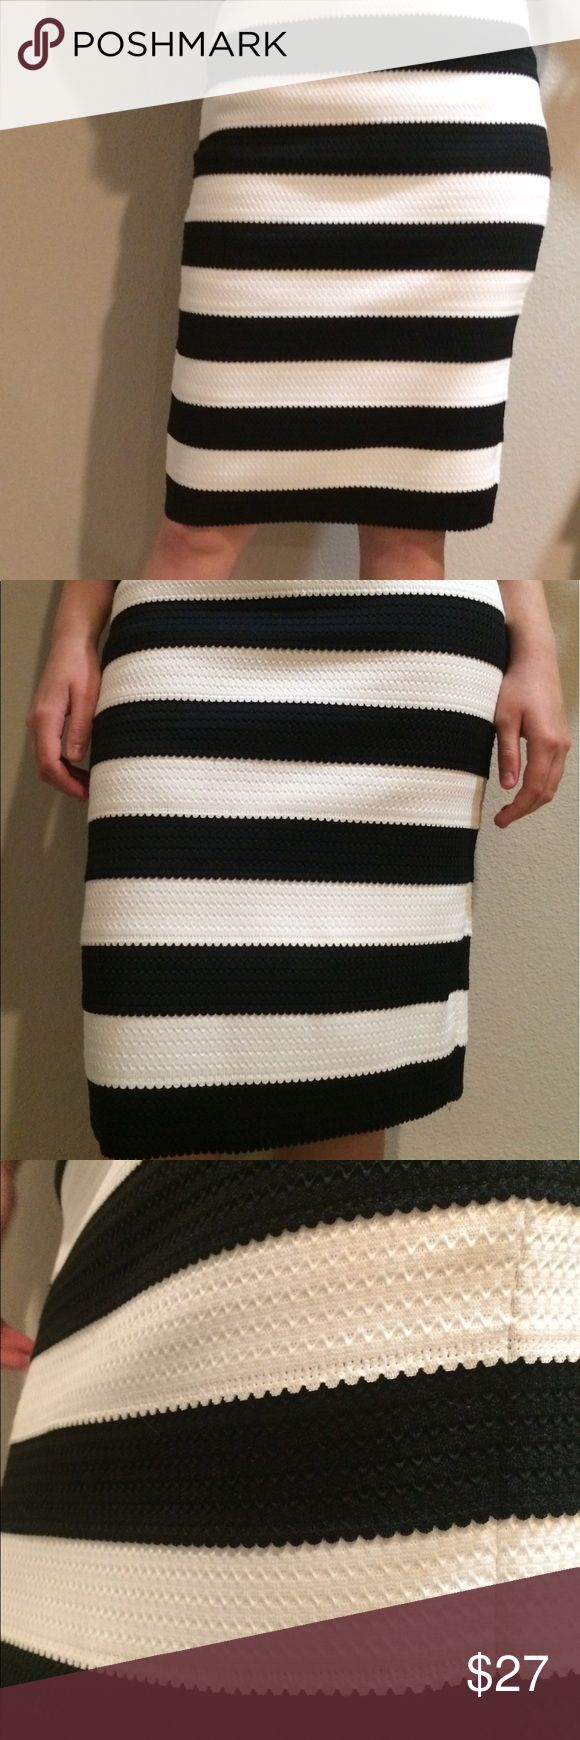 Express body con skirt Express body con striped black and white. In good condition. No zipper. Skirts Pencil